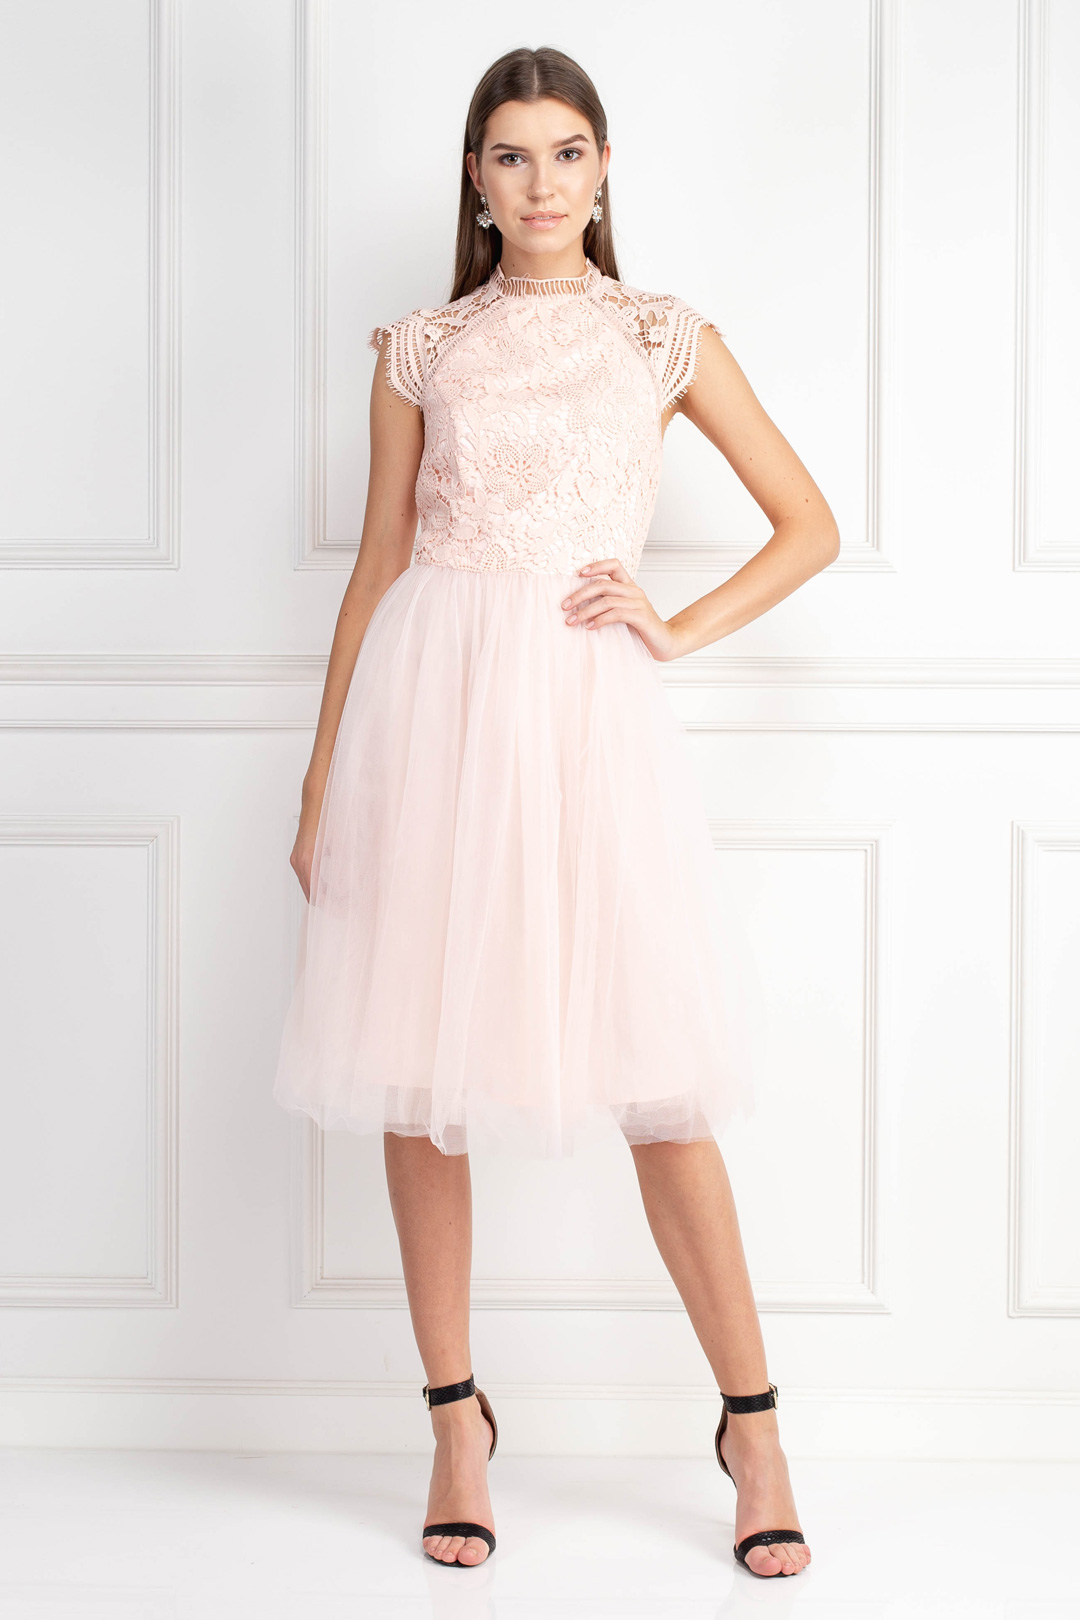 Light Pink Tulle Skirt Dress